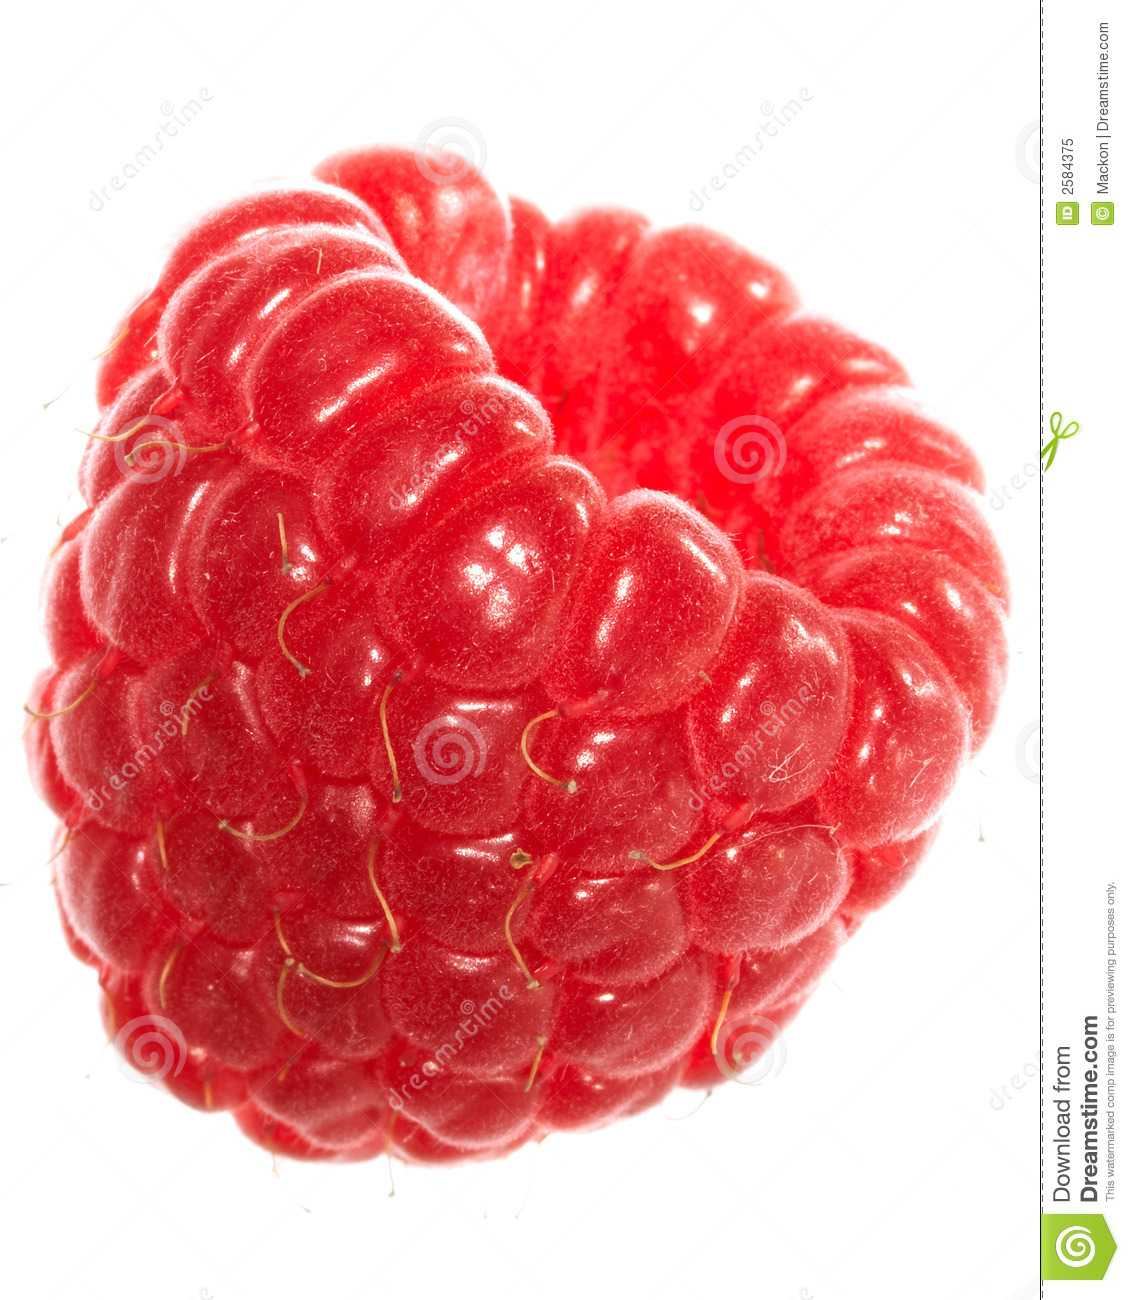 Raspberry Royalty Free Stock Photo - Image: 2584375